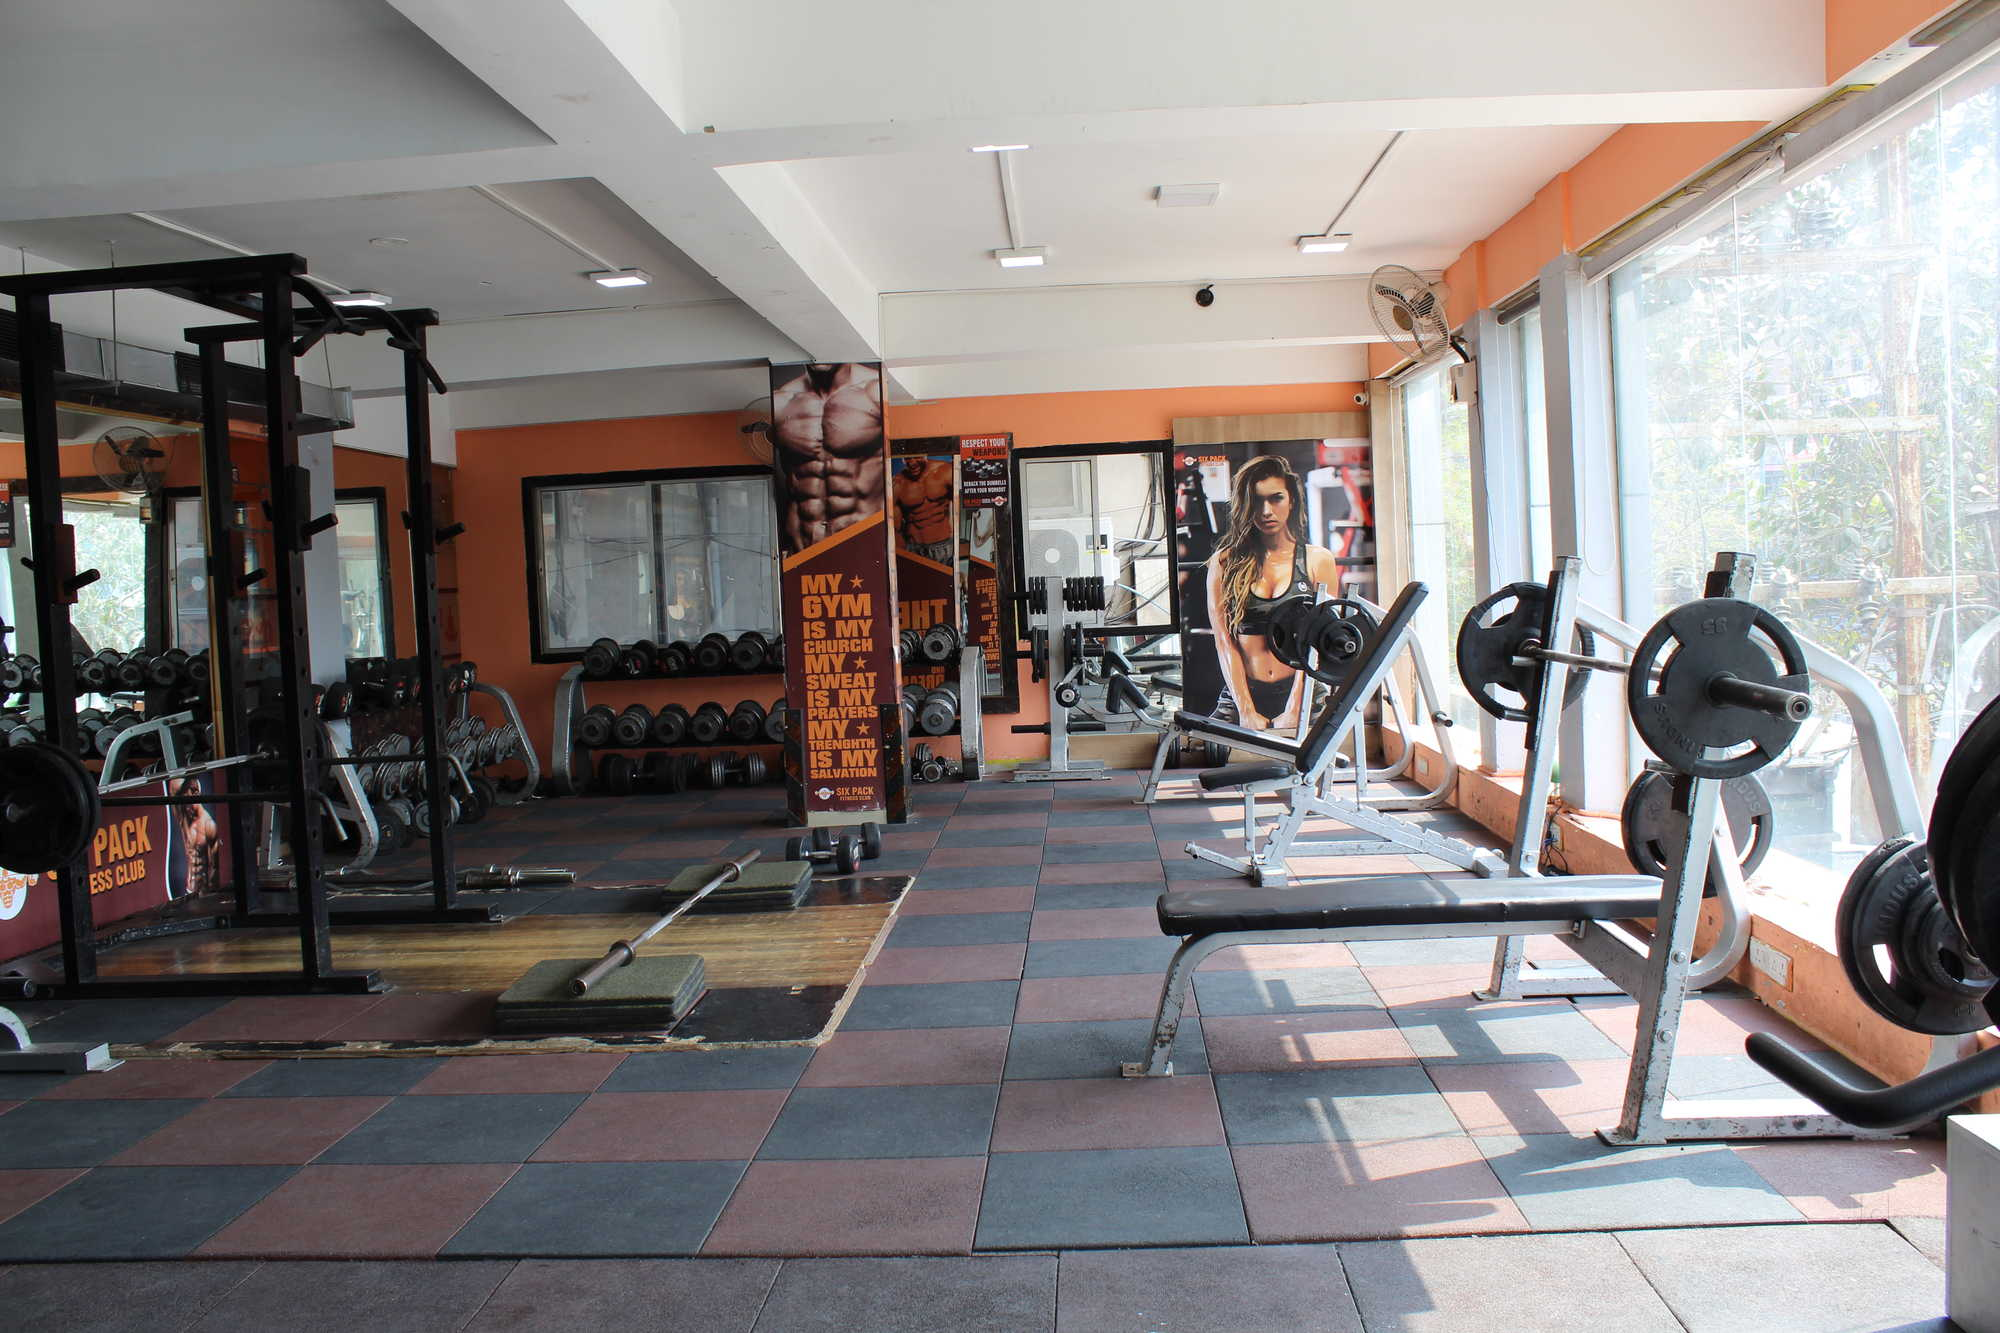 Top 100 gyms in sapna sangeeta road best body building & fitness